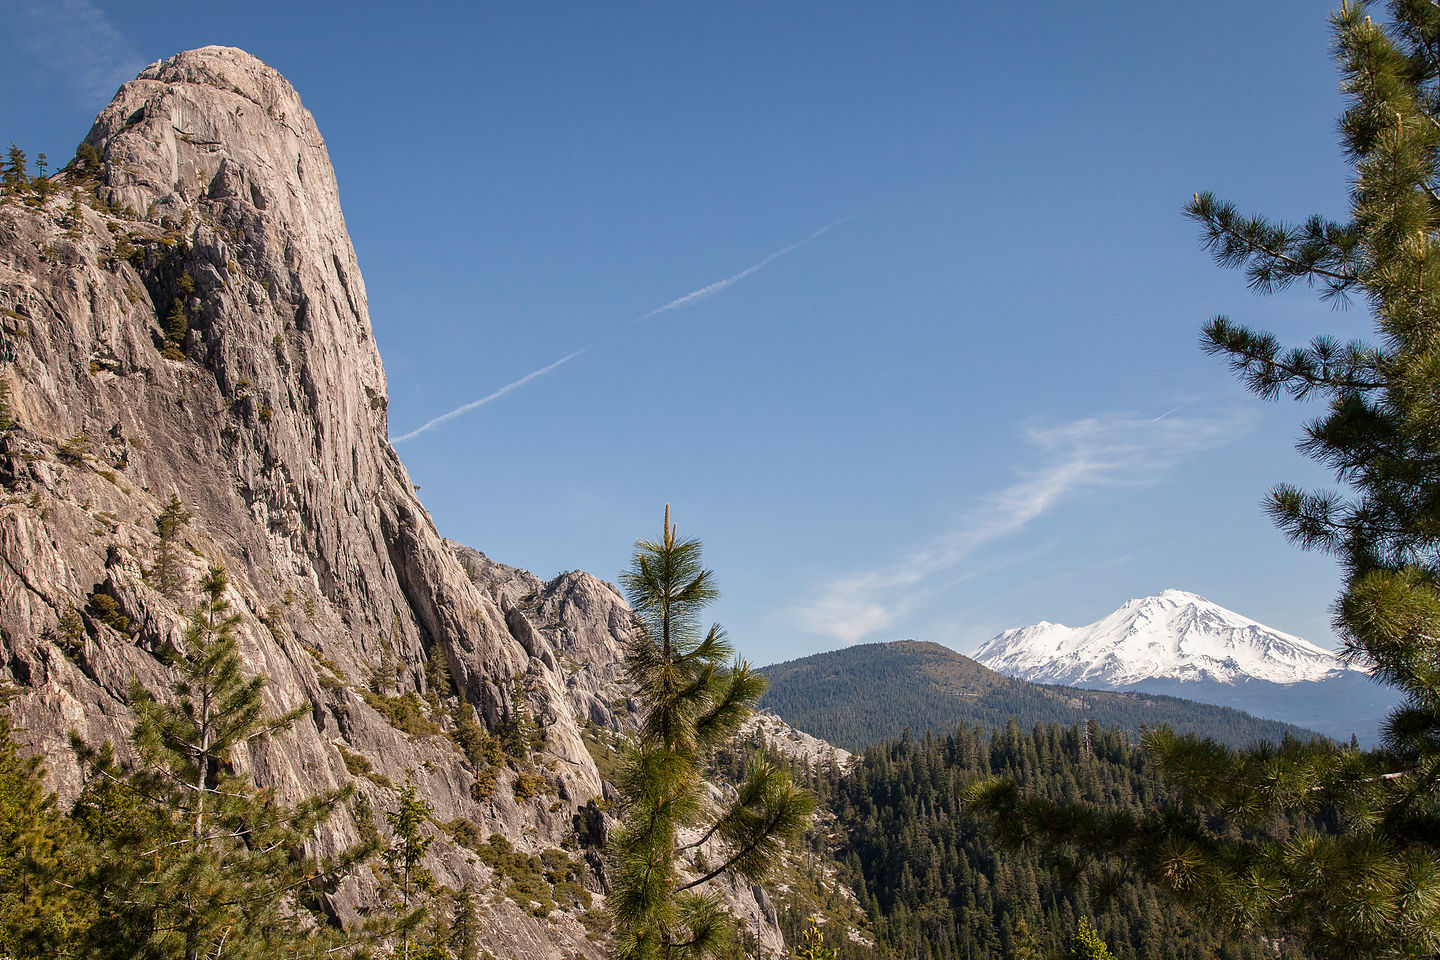 Castle Dome and Mount Shasta